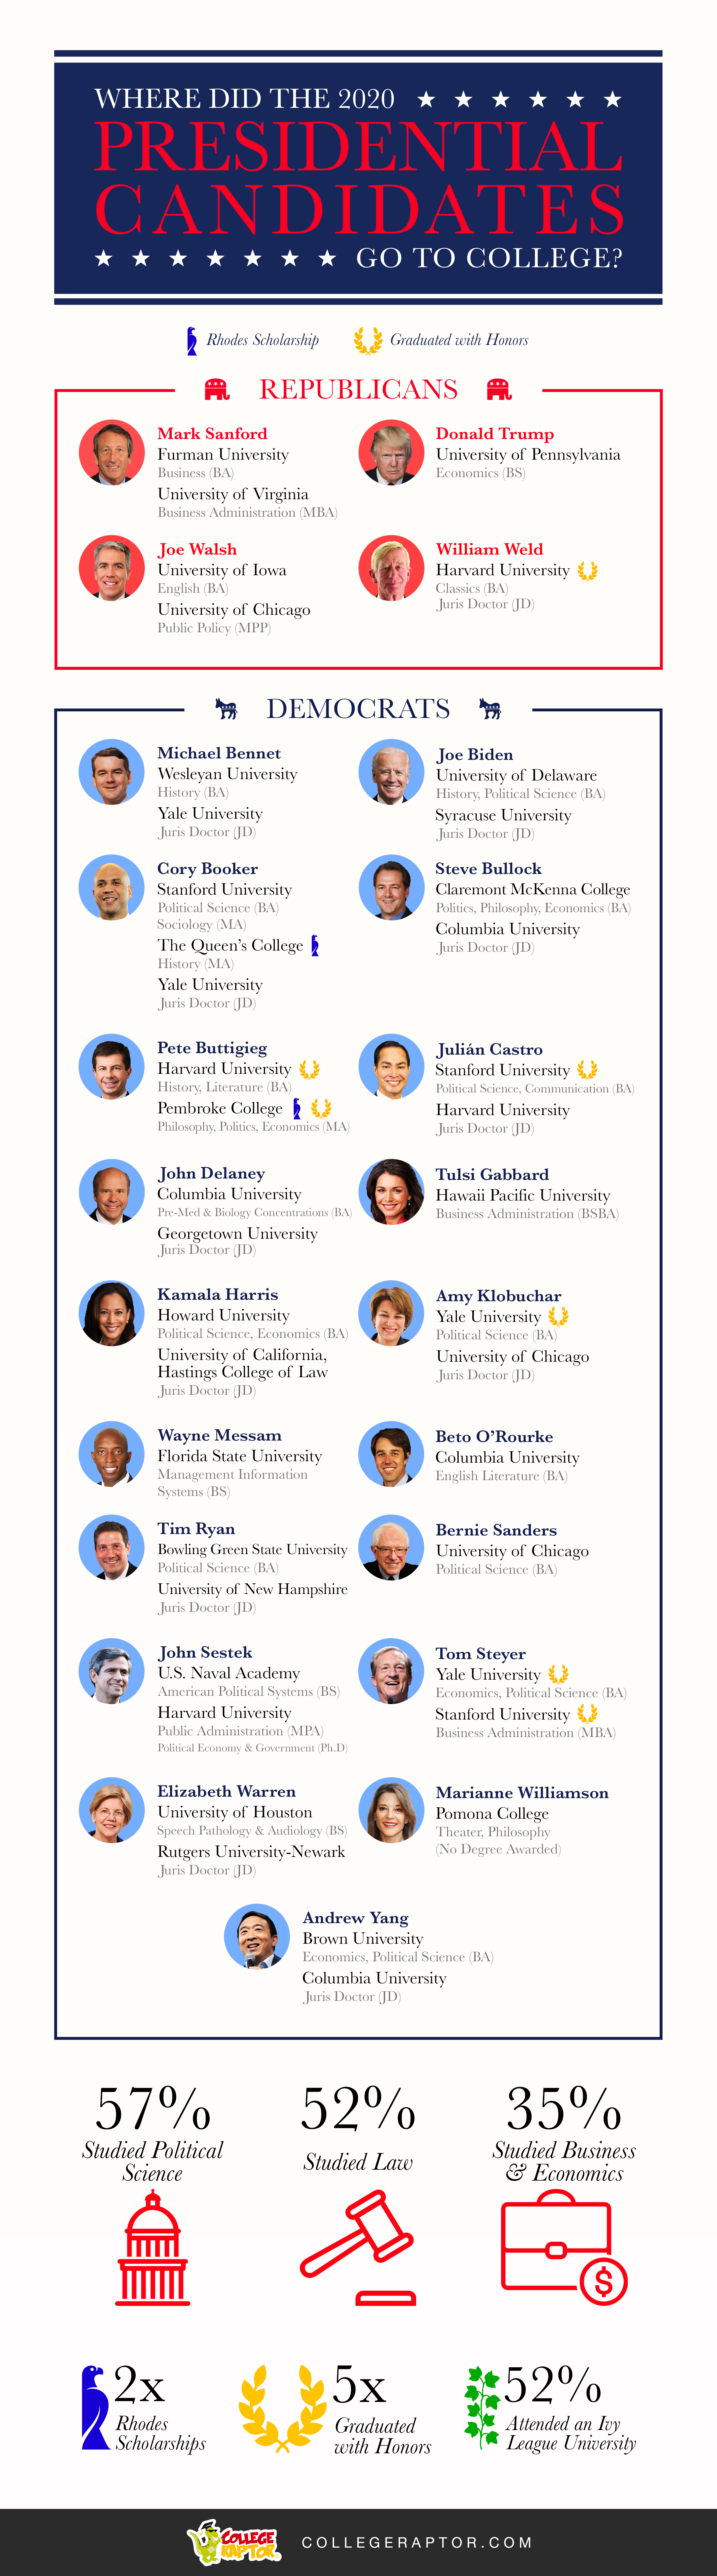 An infographic detailing where the 2020 presidential candidates went to college